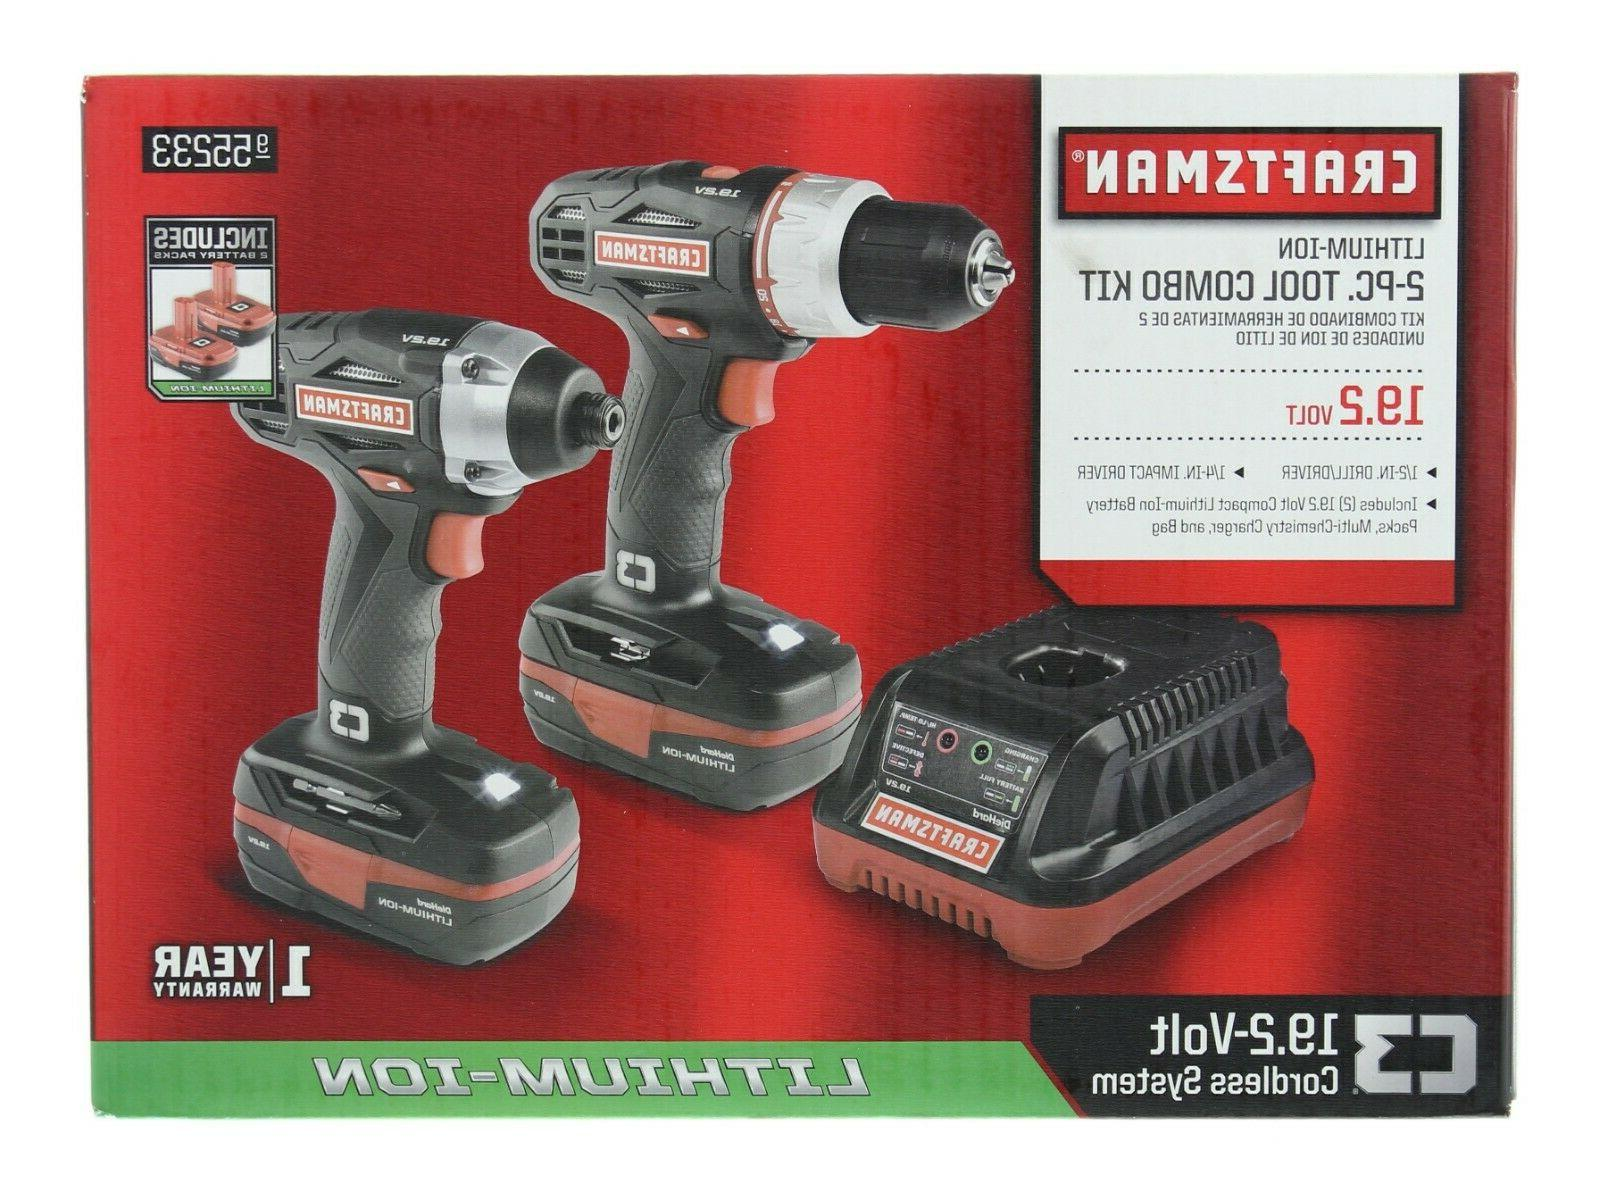 Craftsman C3 19.2 V 1/2 in Drill, 1/4 in Impact Driver Combo